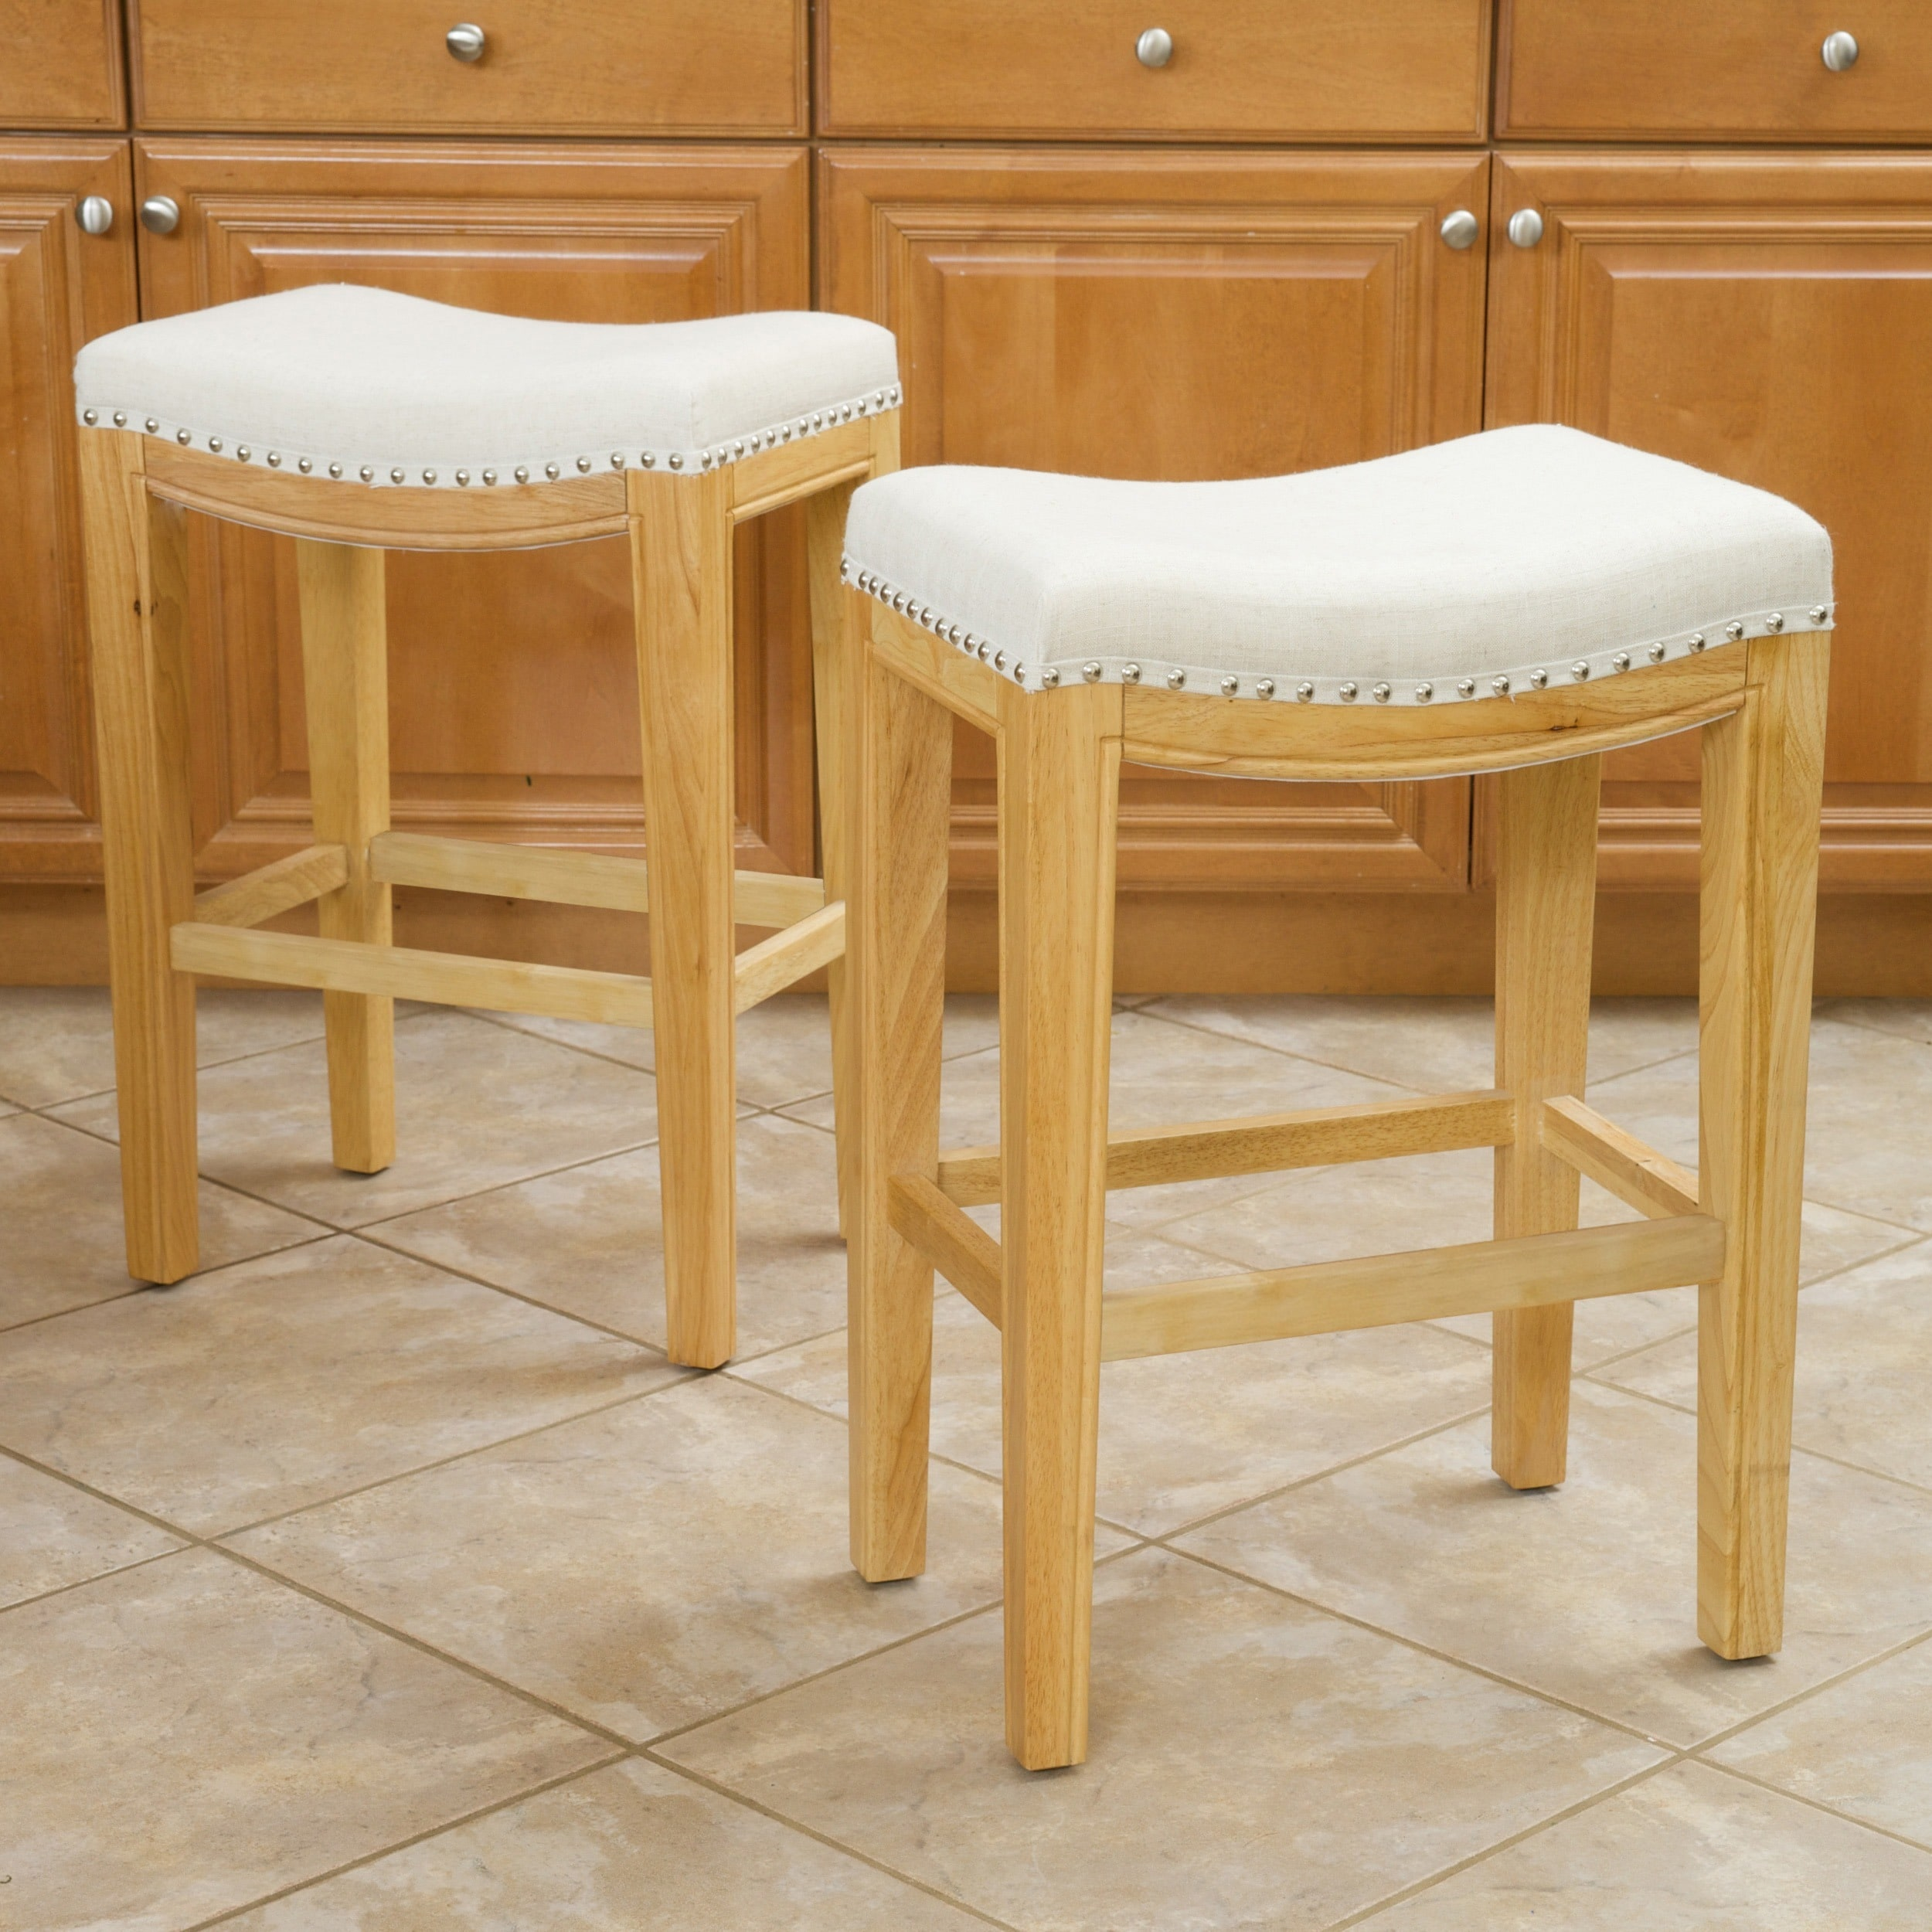 Avondale 26 Inch Beige Backless Counter Stool Set Of 2 By